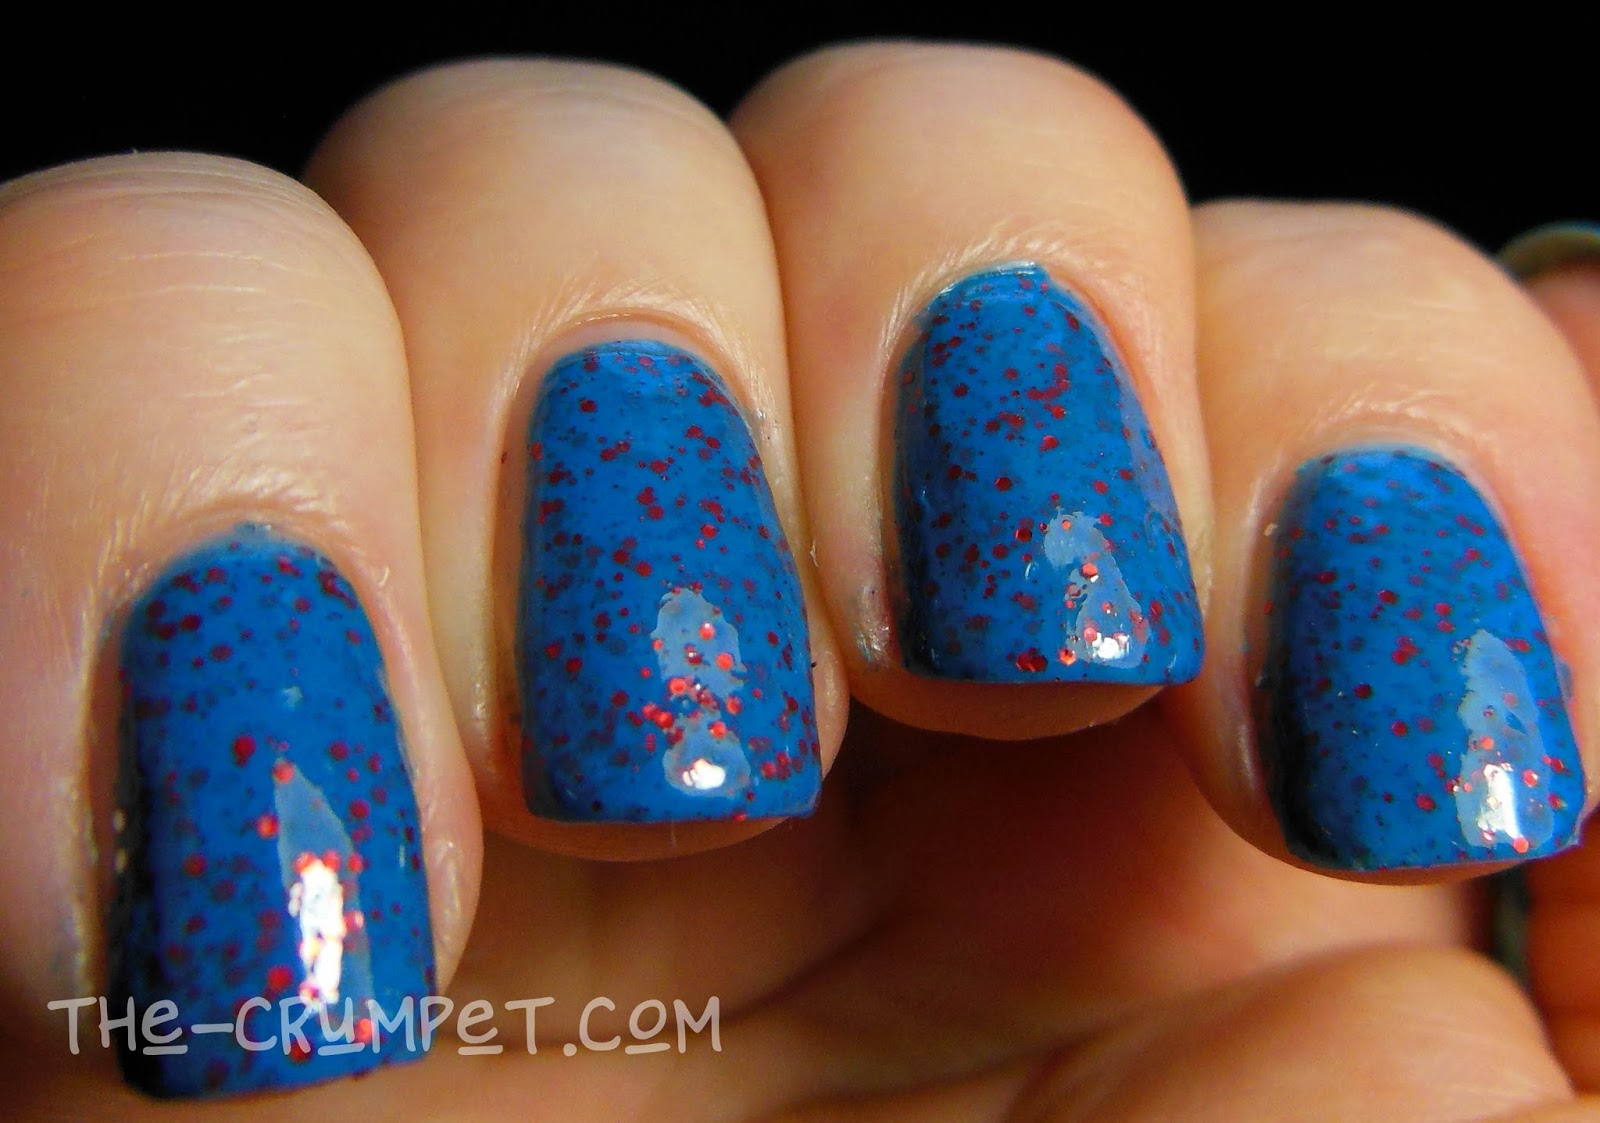 Blue Glitter Acrylic Nails - 2018 images & pictures - blue acrylic ...